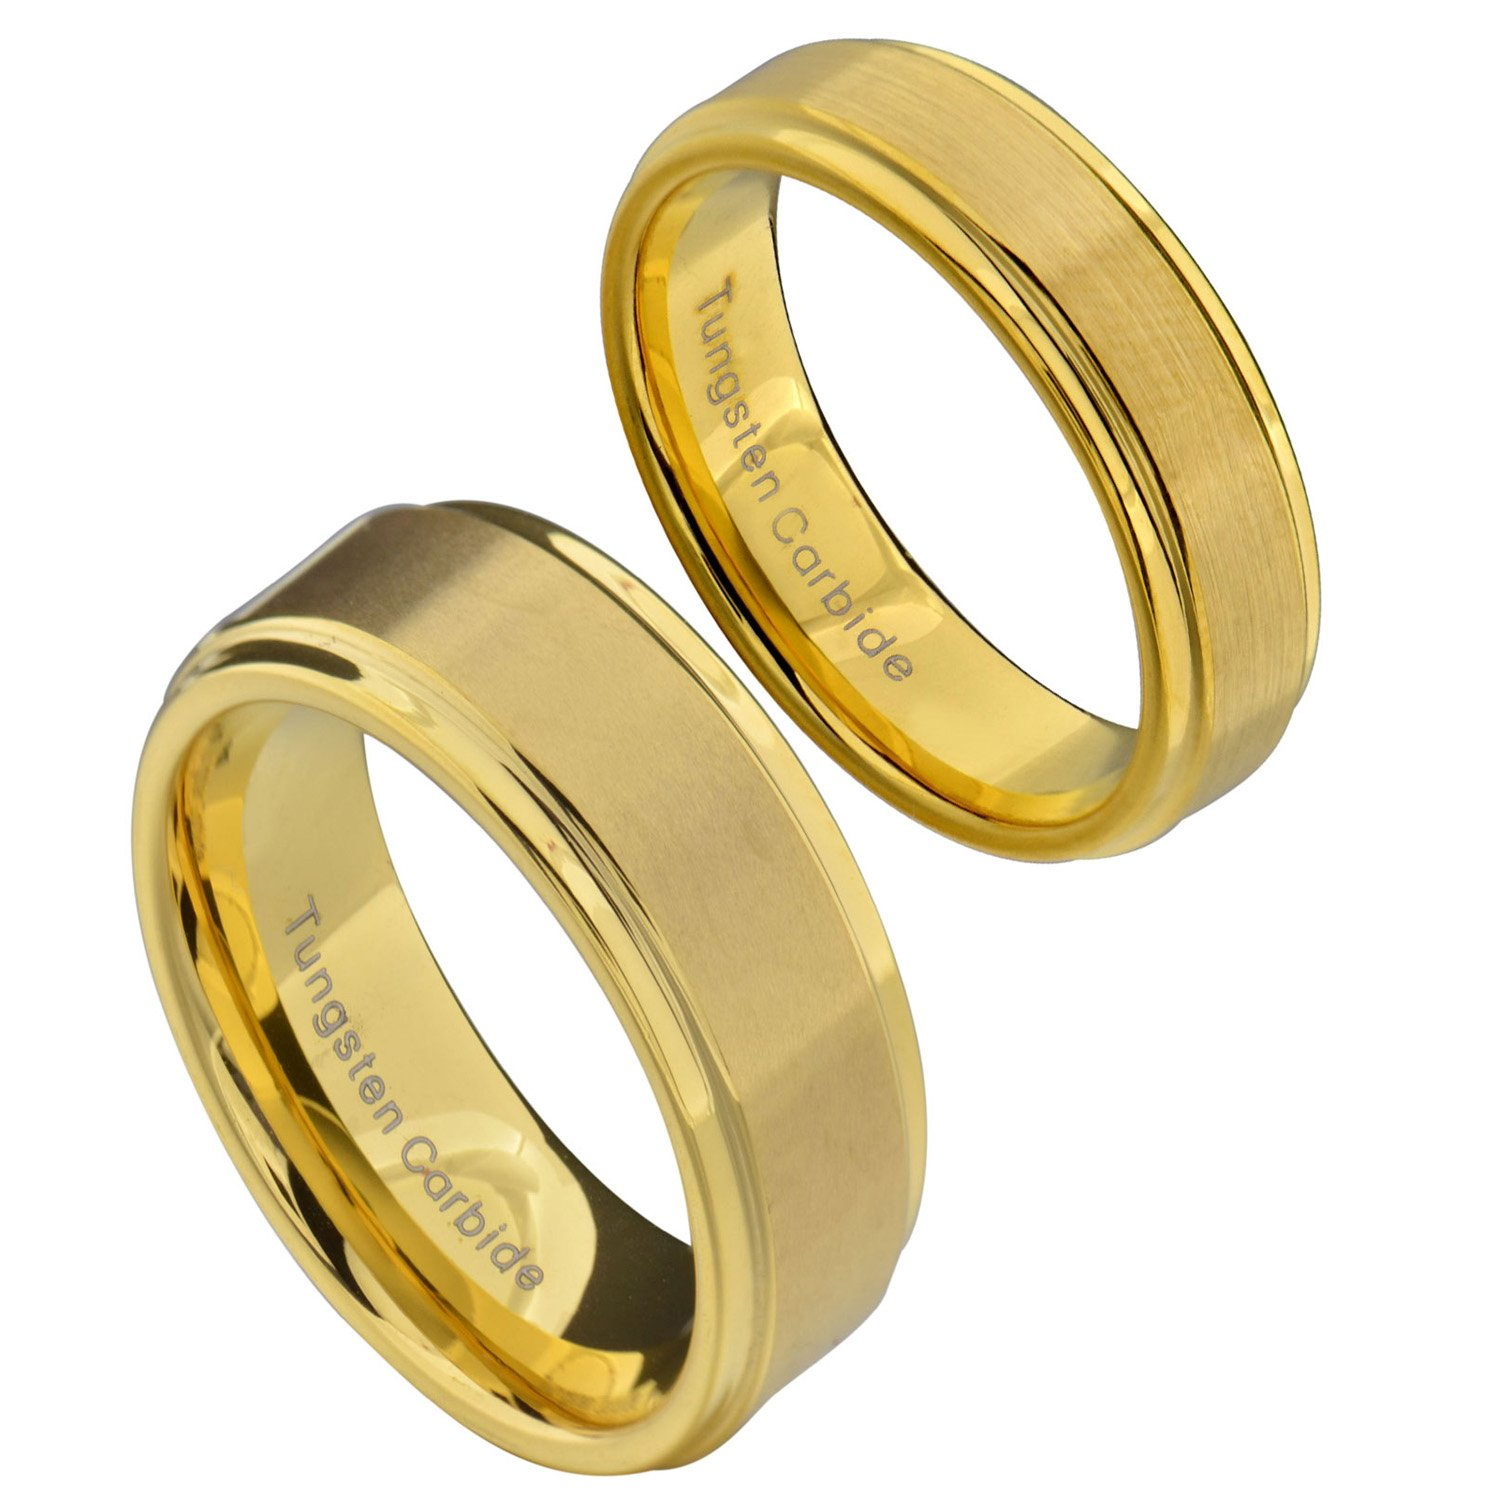 FlameReflection Tungsten His & Hers Wedding Ring Sets Gold Plated Brushed Top Polished Step Edge Comfort Fit 6&8mm